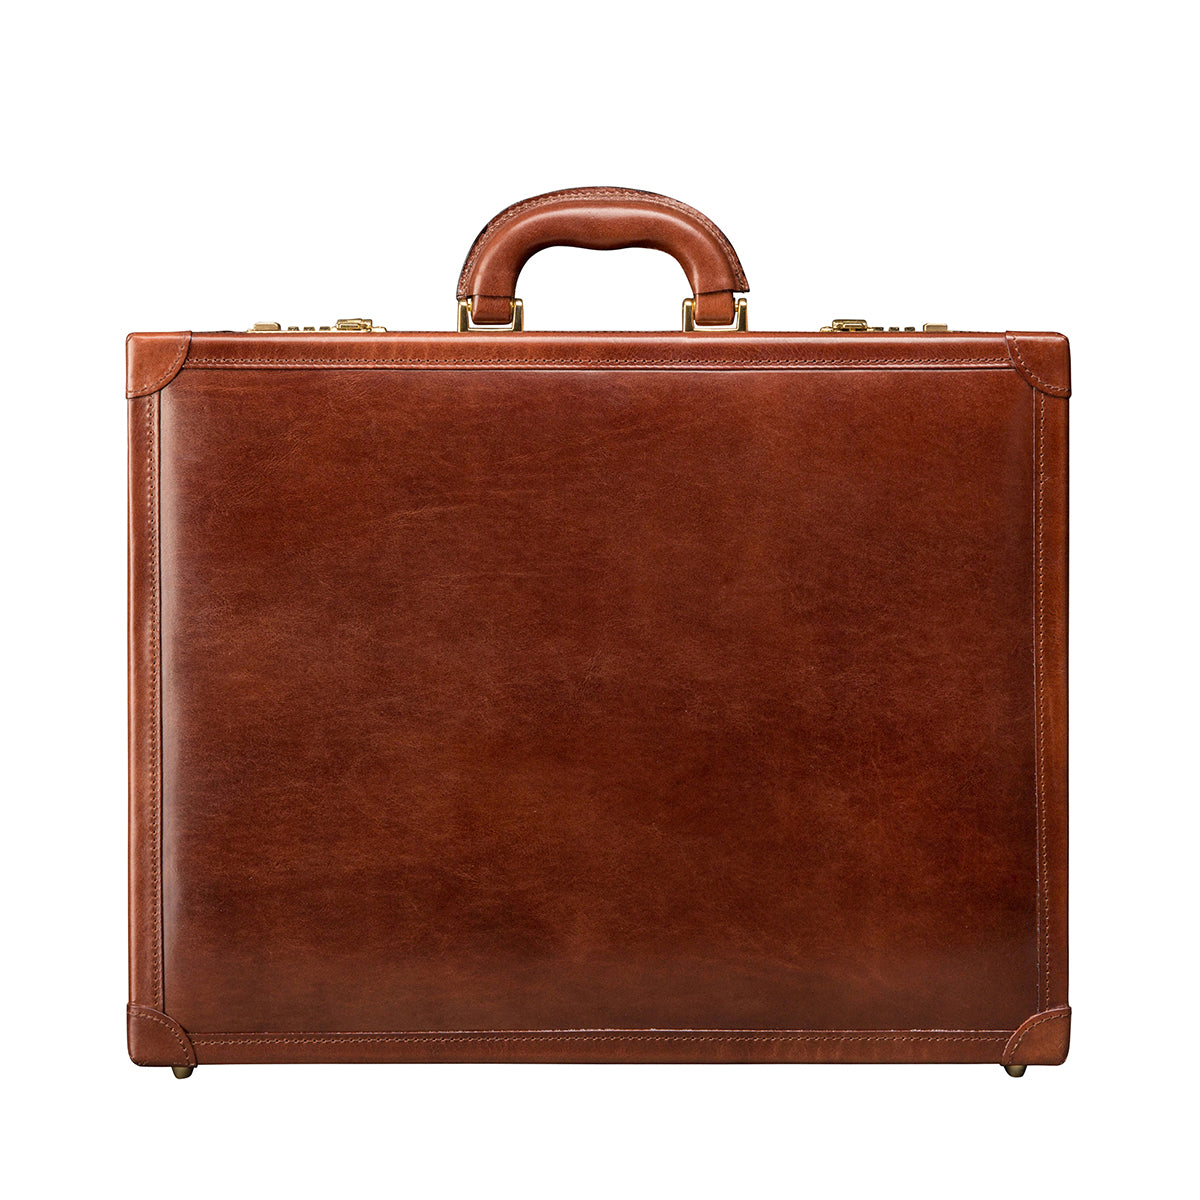 Image 1 of the 'Buroni' Chestnut Veg-Tanned Leather Business Attaché  Case